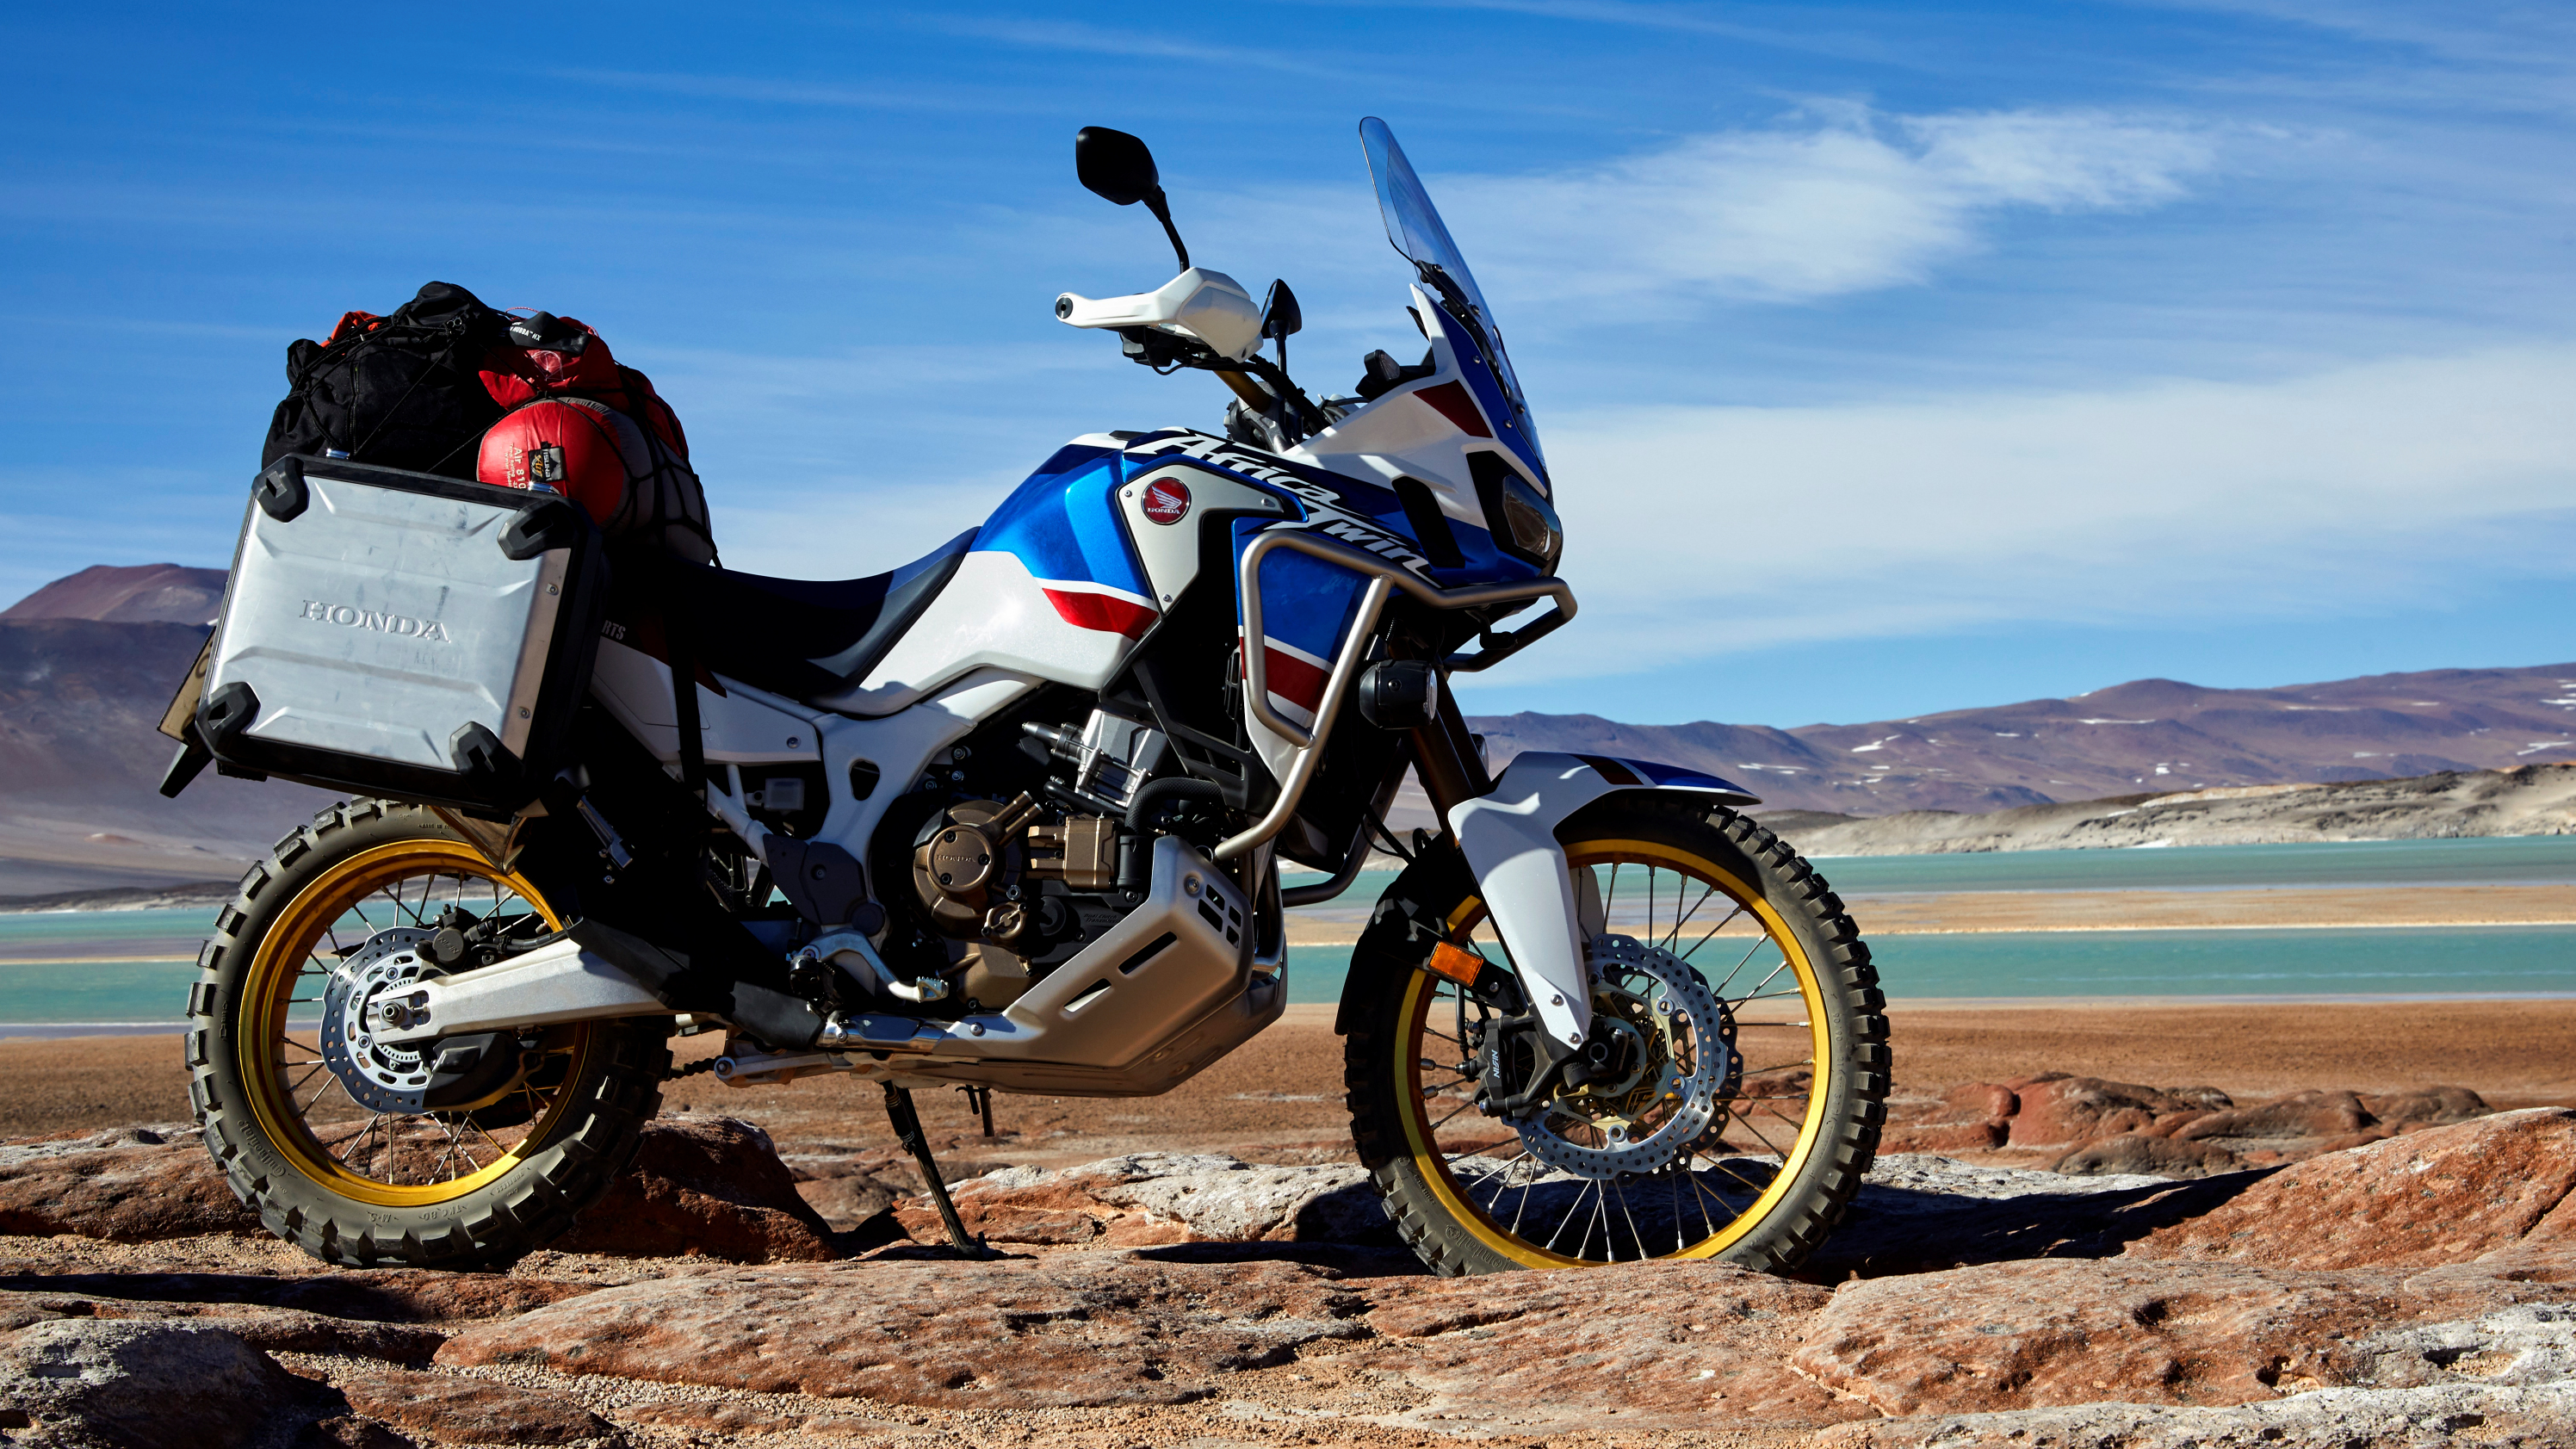 2018 Honda Africa Twin Adventure Sports Pictures, Photos